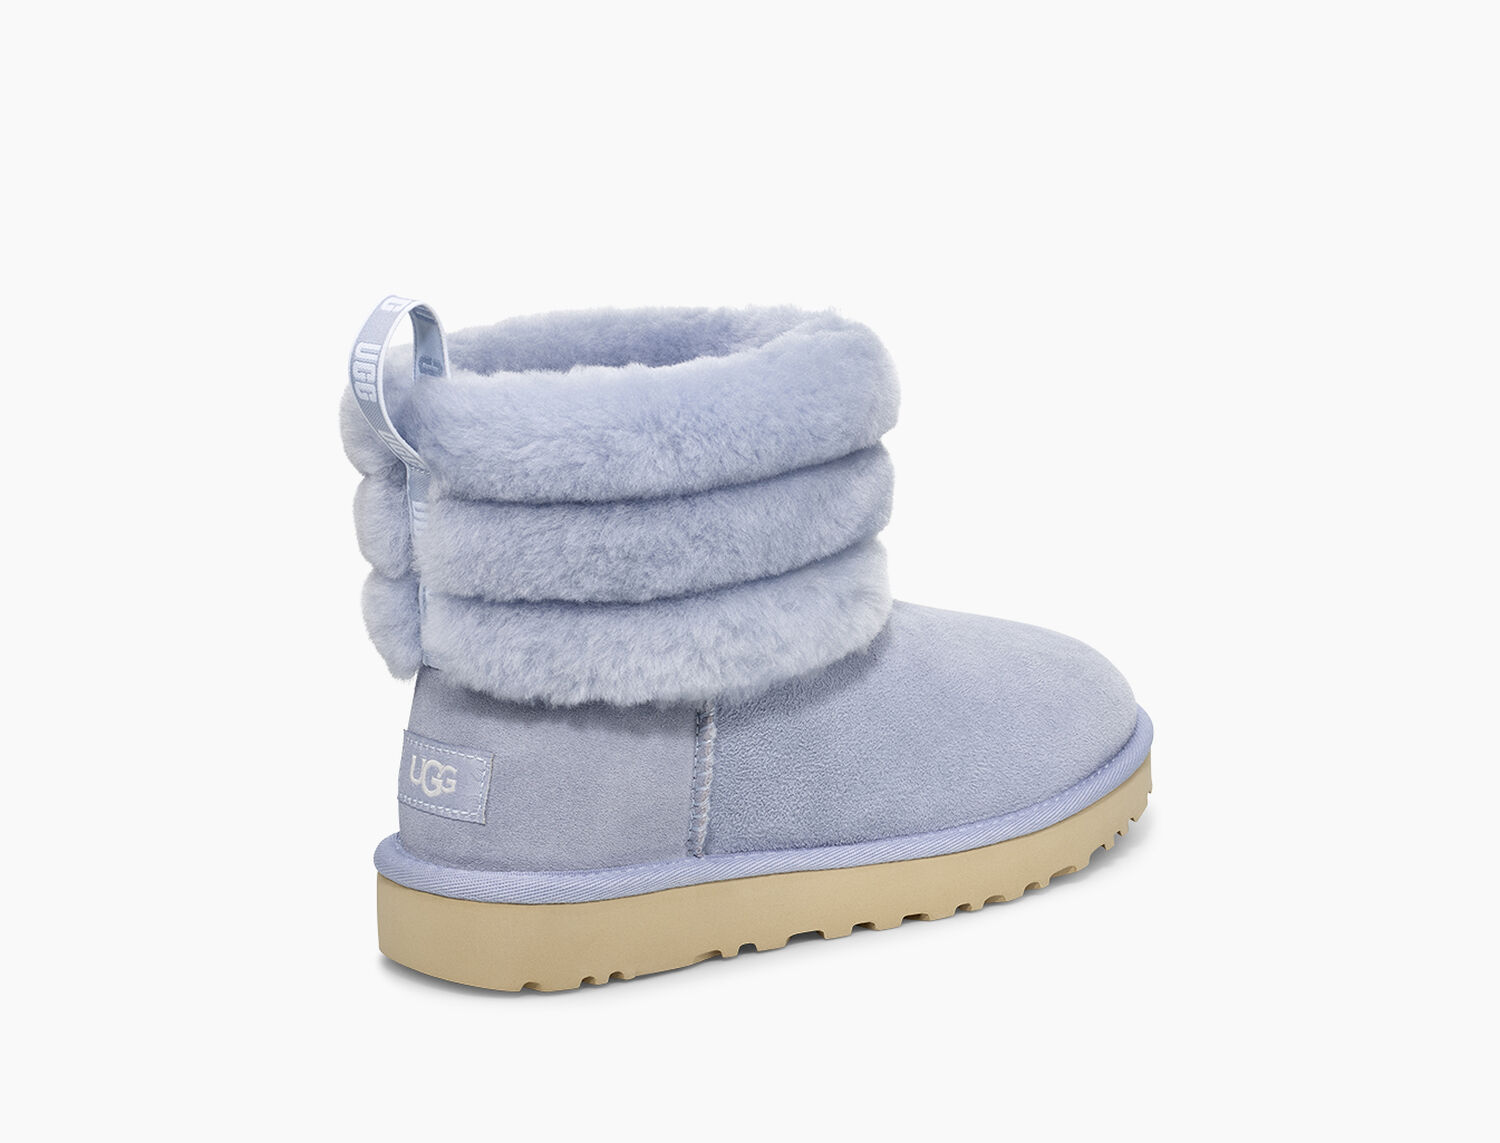 62ecc6dc6d3 Women's Share this product Classic Mini Fluff Quilted Boot